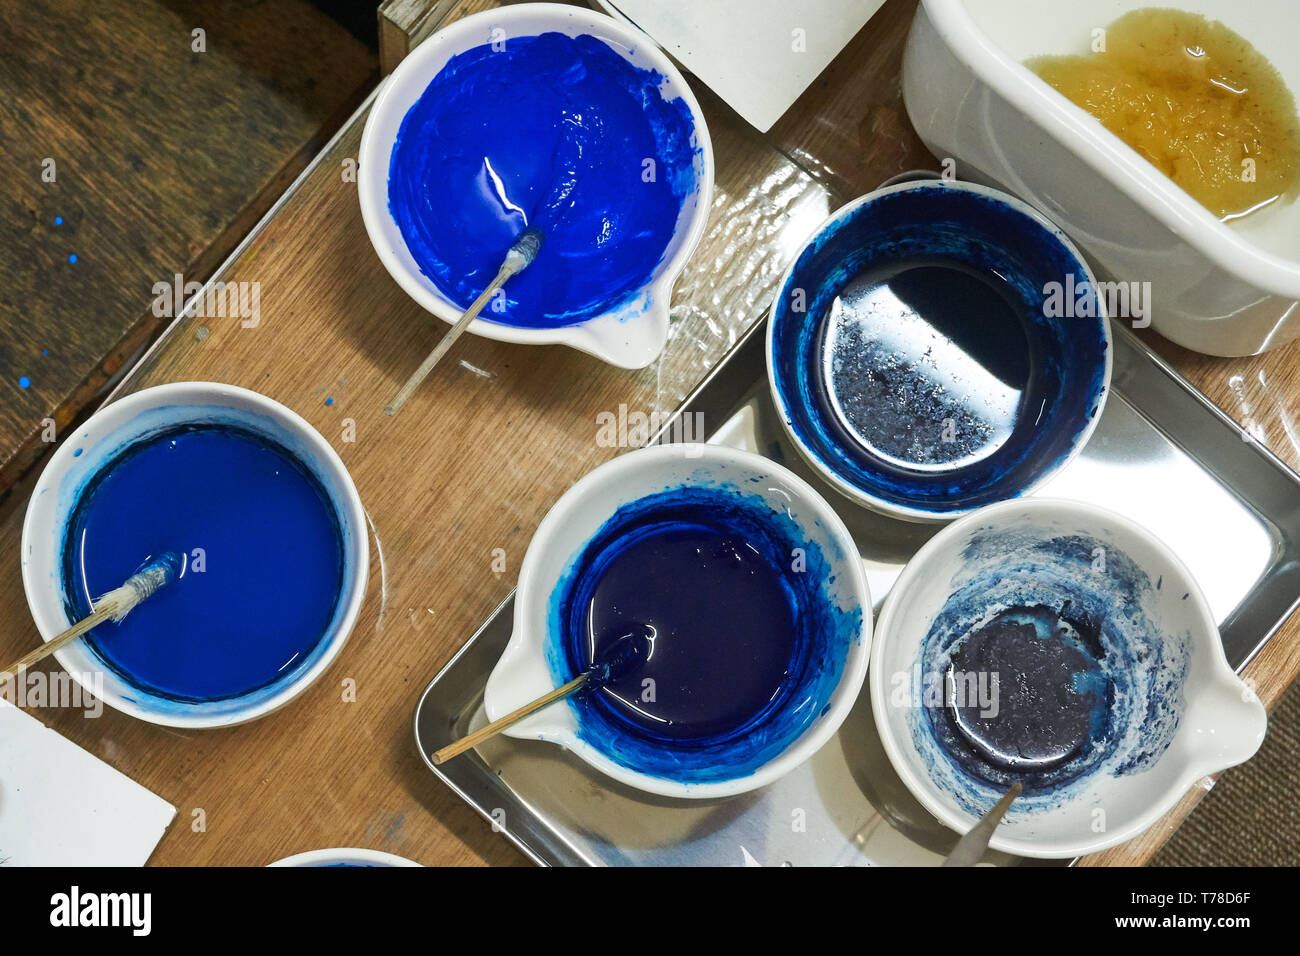 A Japanese woodblock printmaker's blue pigments arranged in cups with brushes on a table with other tools surrounding them. - Stock Image